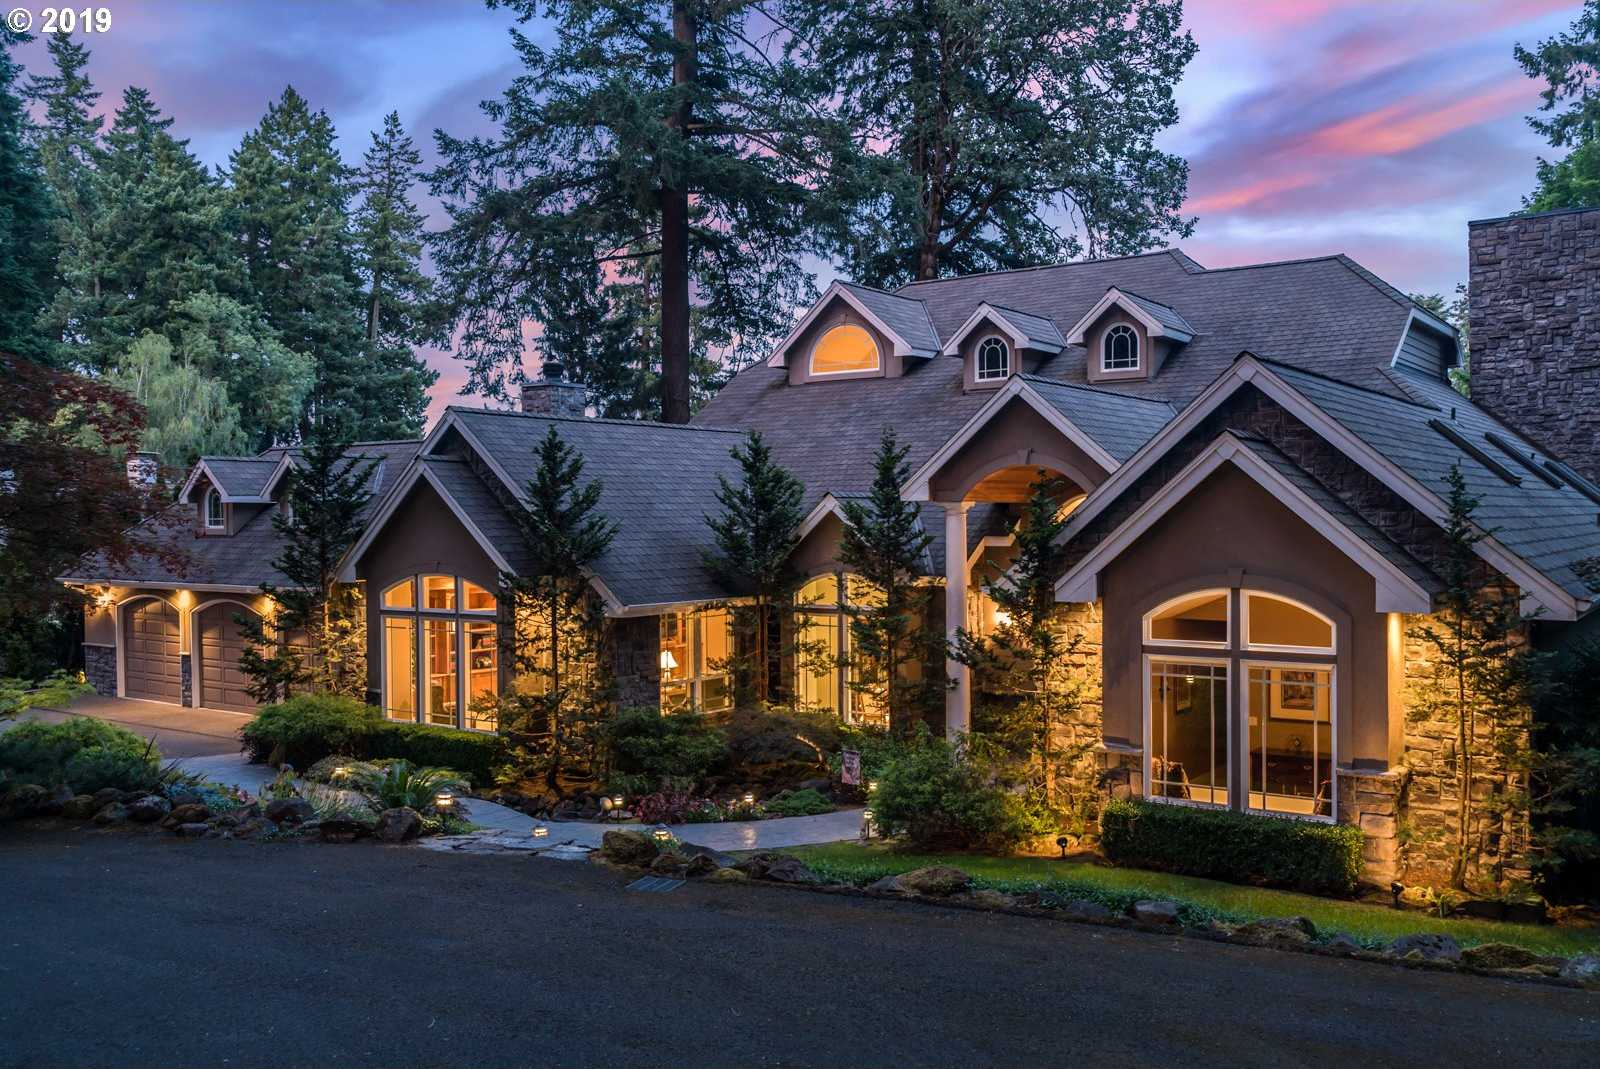 $4,195,000 - 5Br/5Ba -  for Sale in Main Lake Oswego, Lake Oswego